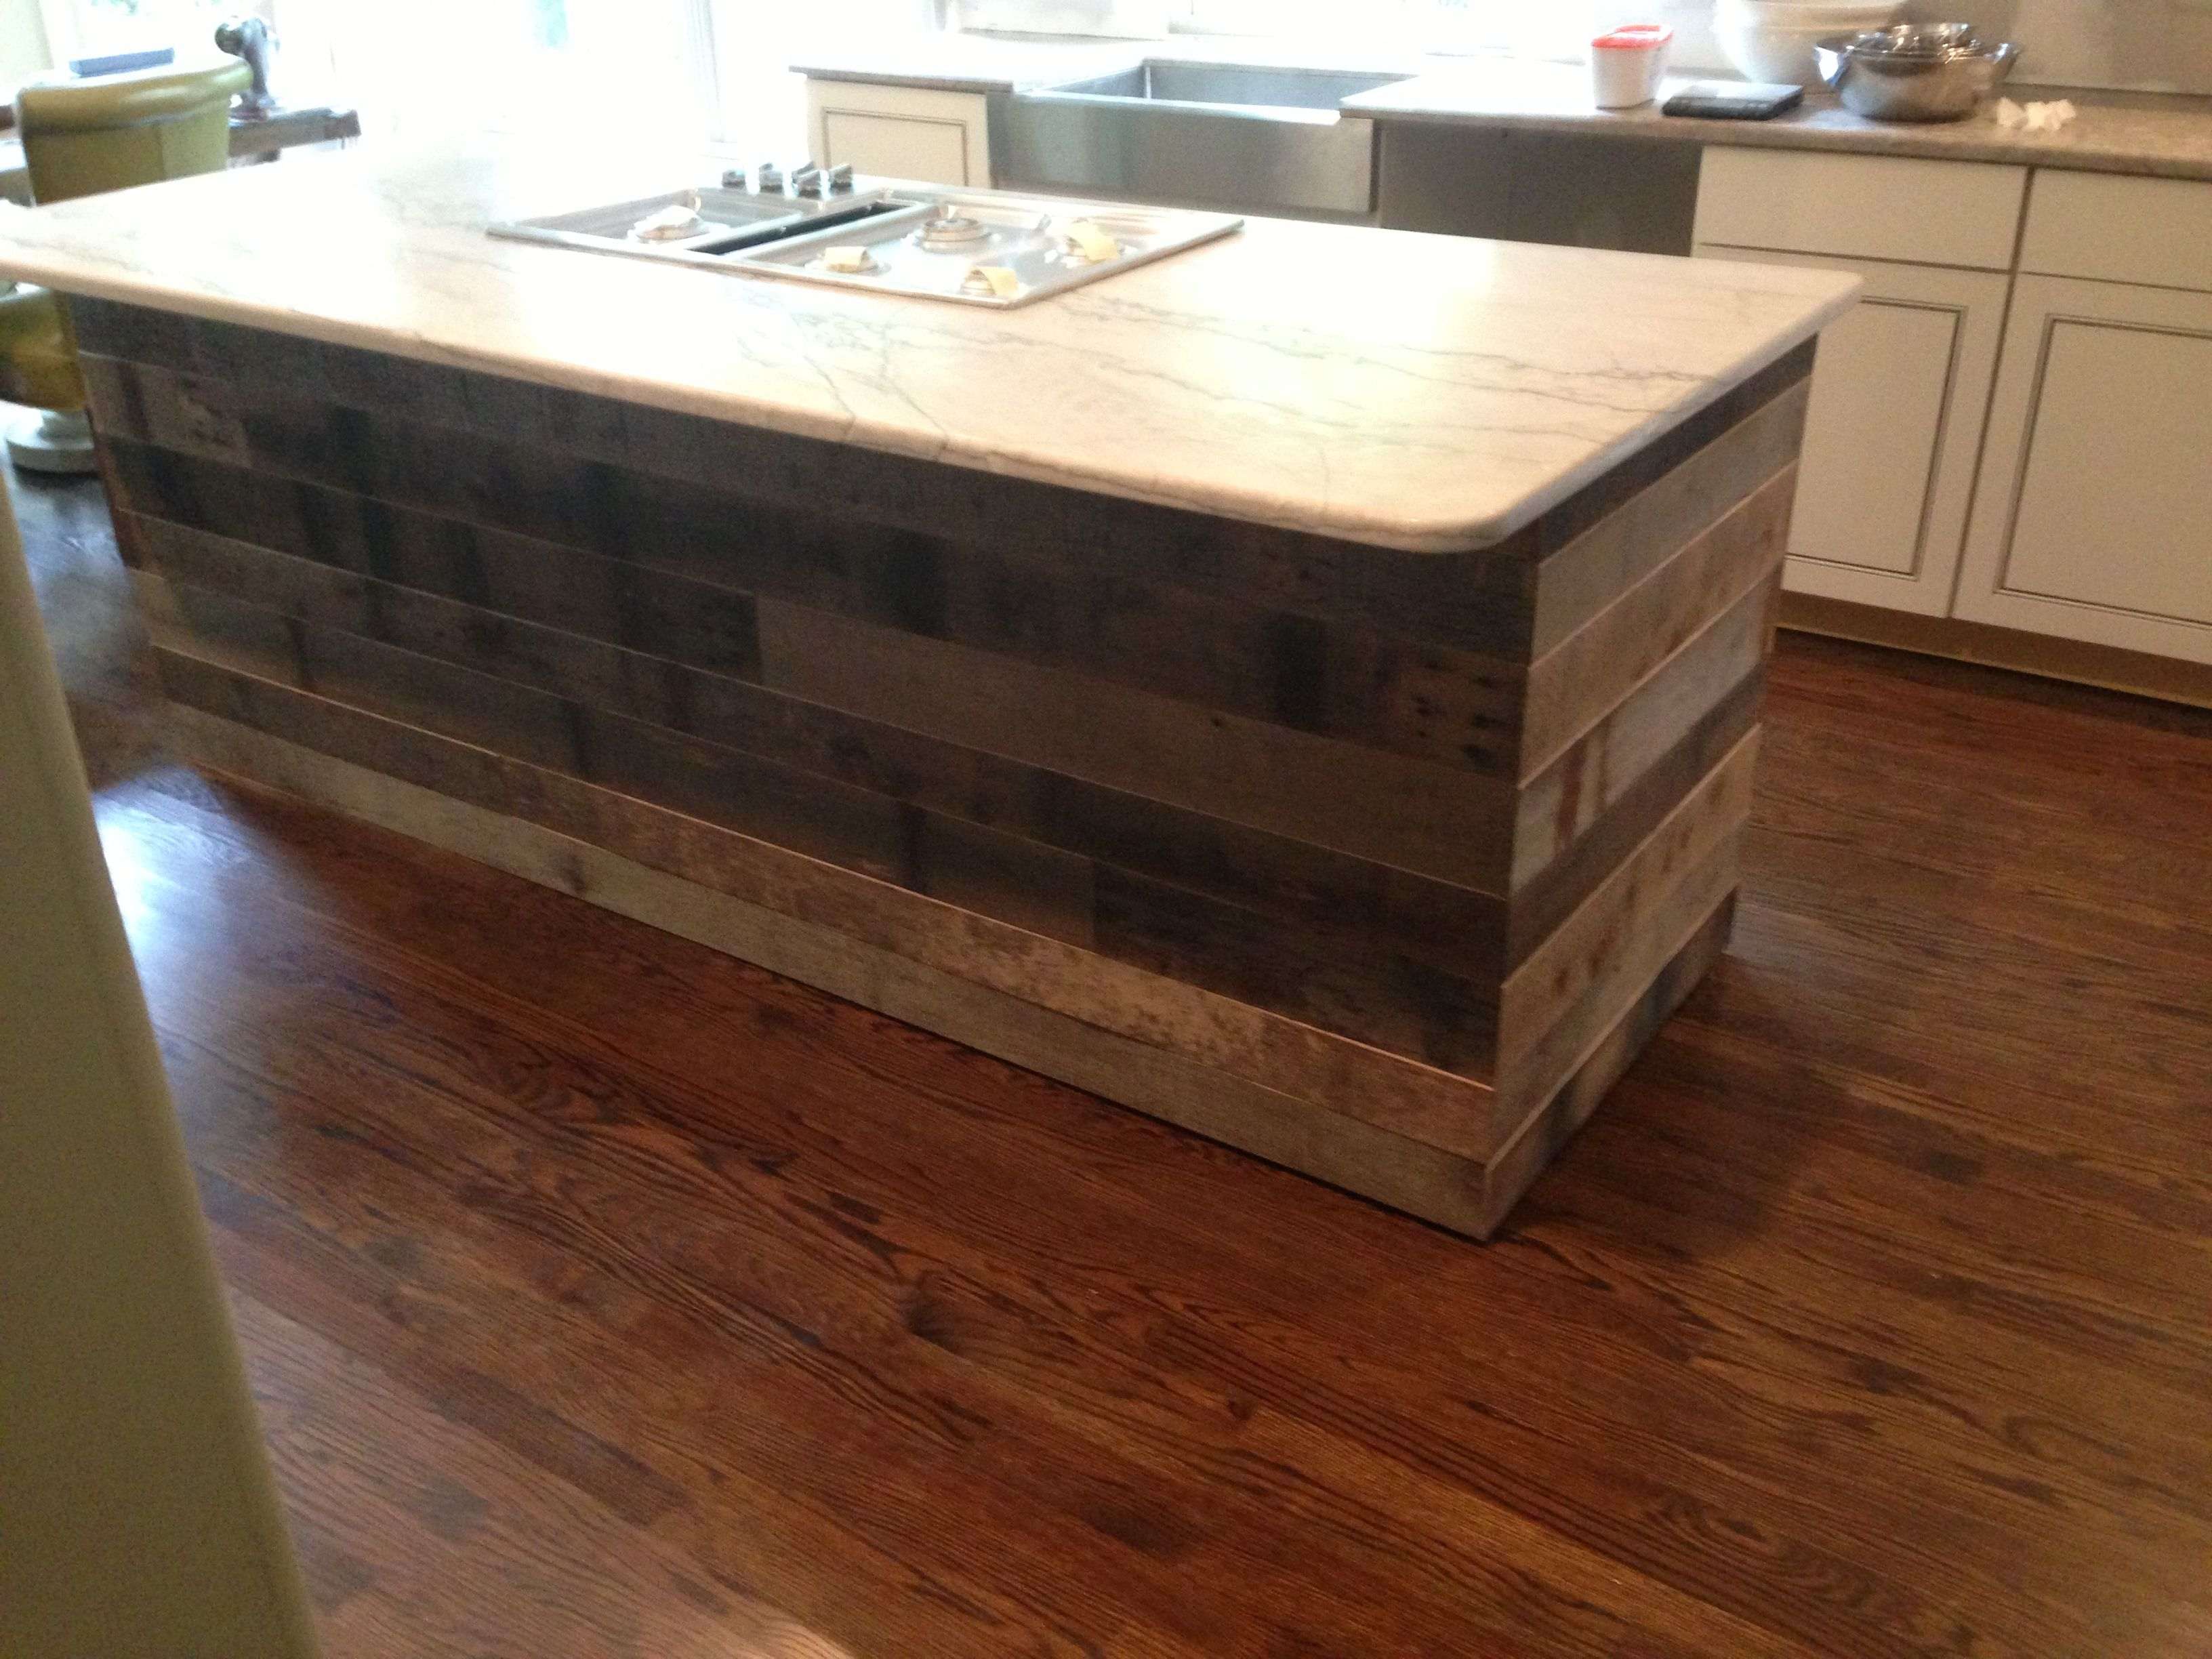 pin by gretchen hilley on kitchen